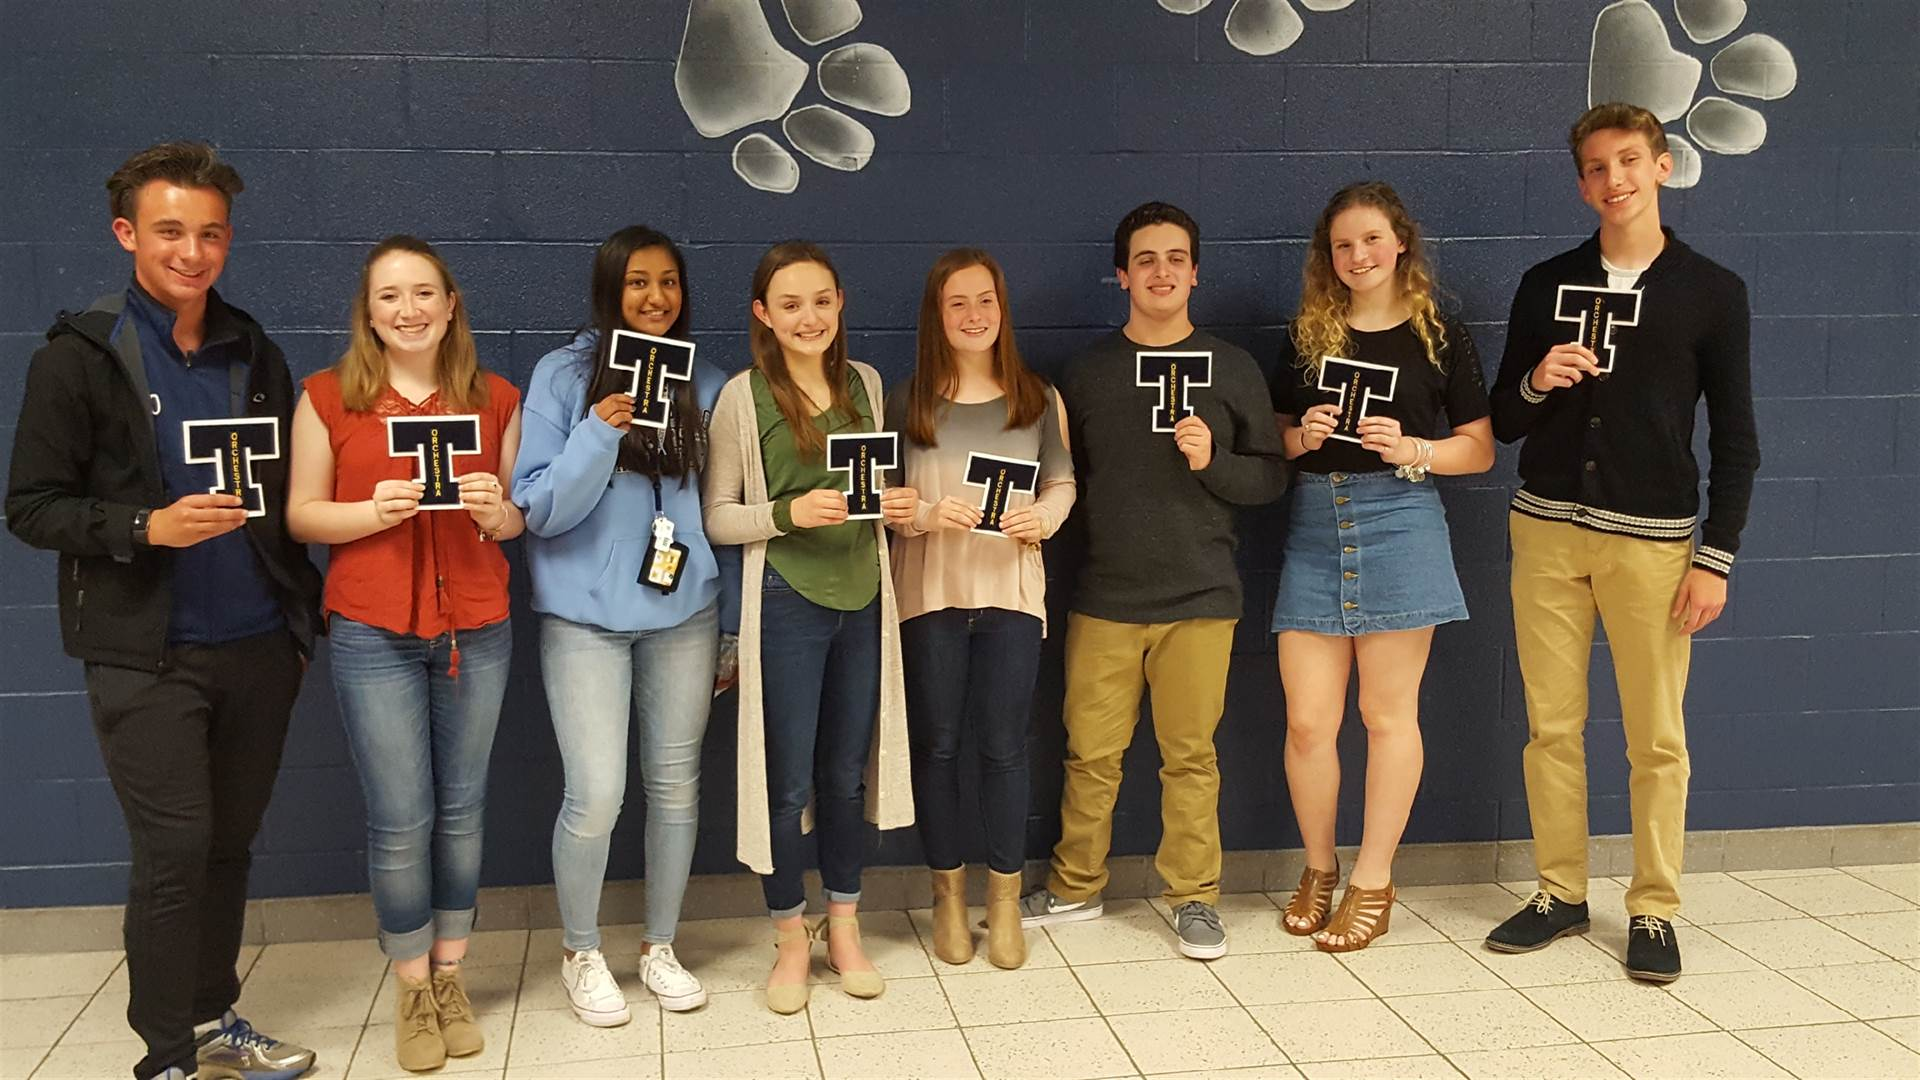 Some orchestra letter winners holding their letters.